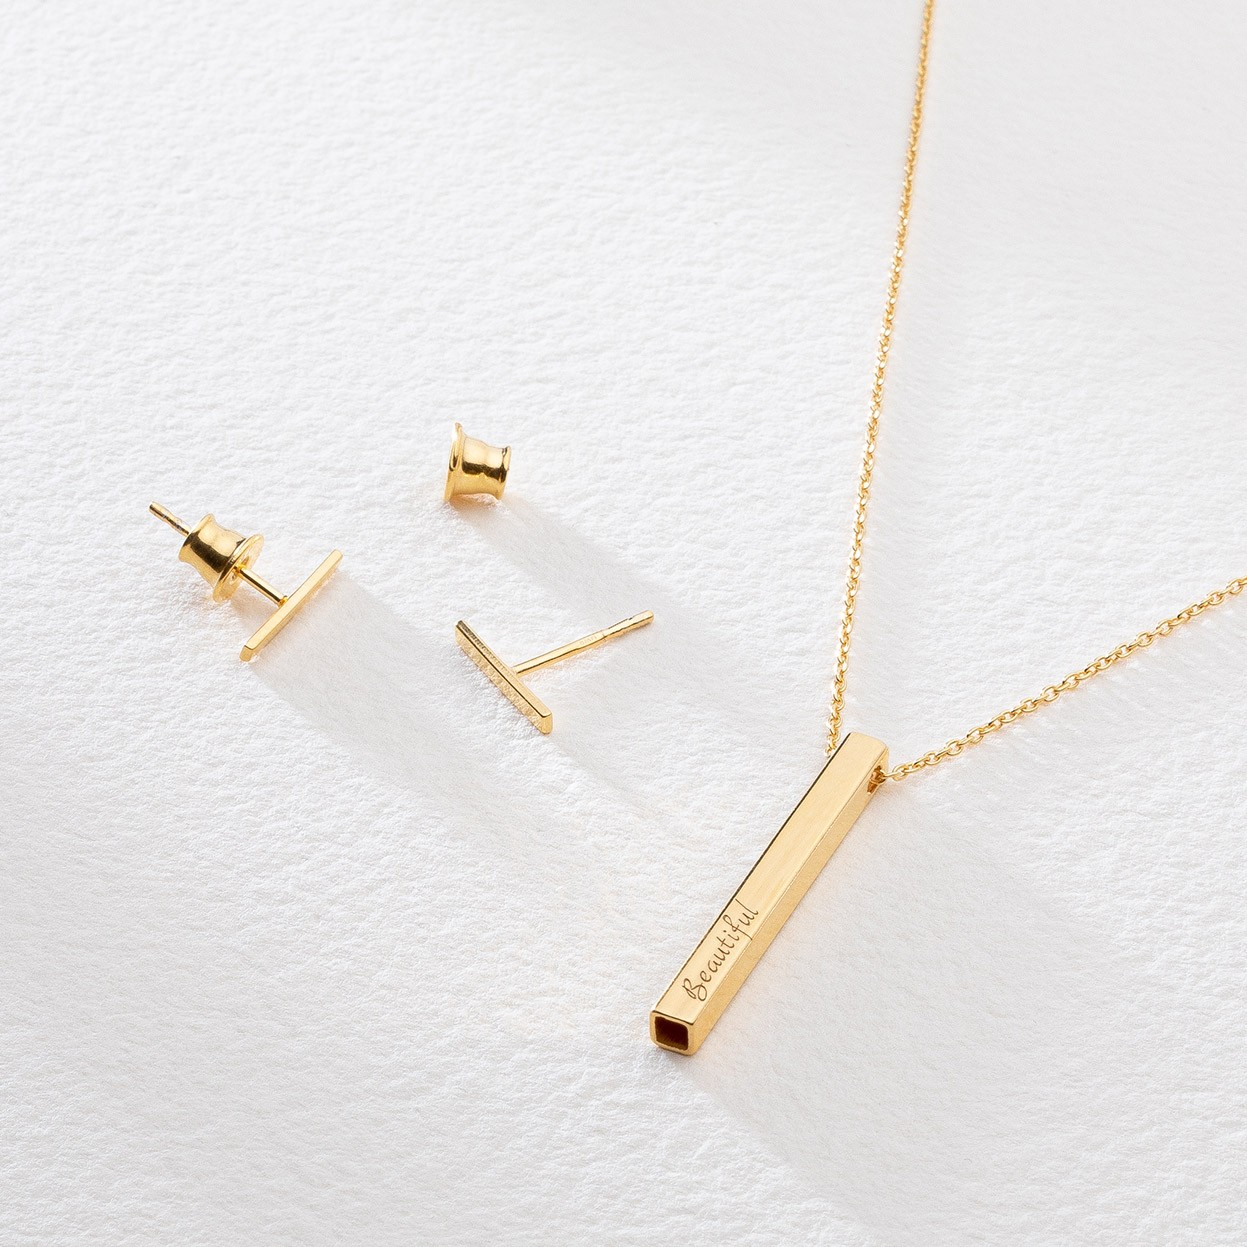 RECTANGLE TUBE 2,7 cm necklace 925 with engraving